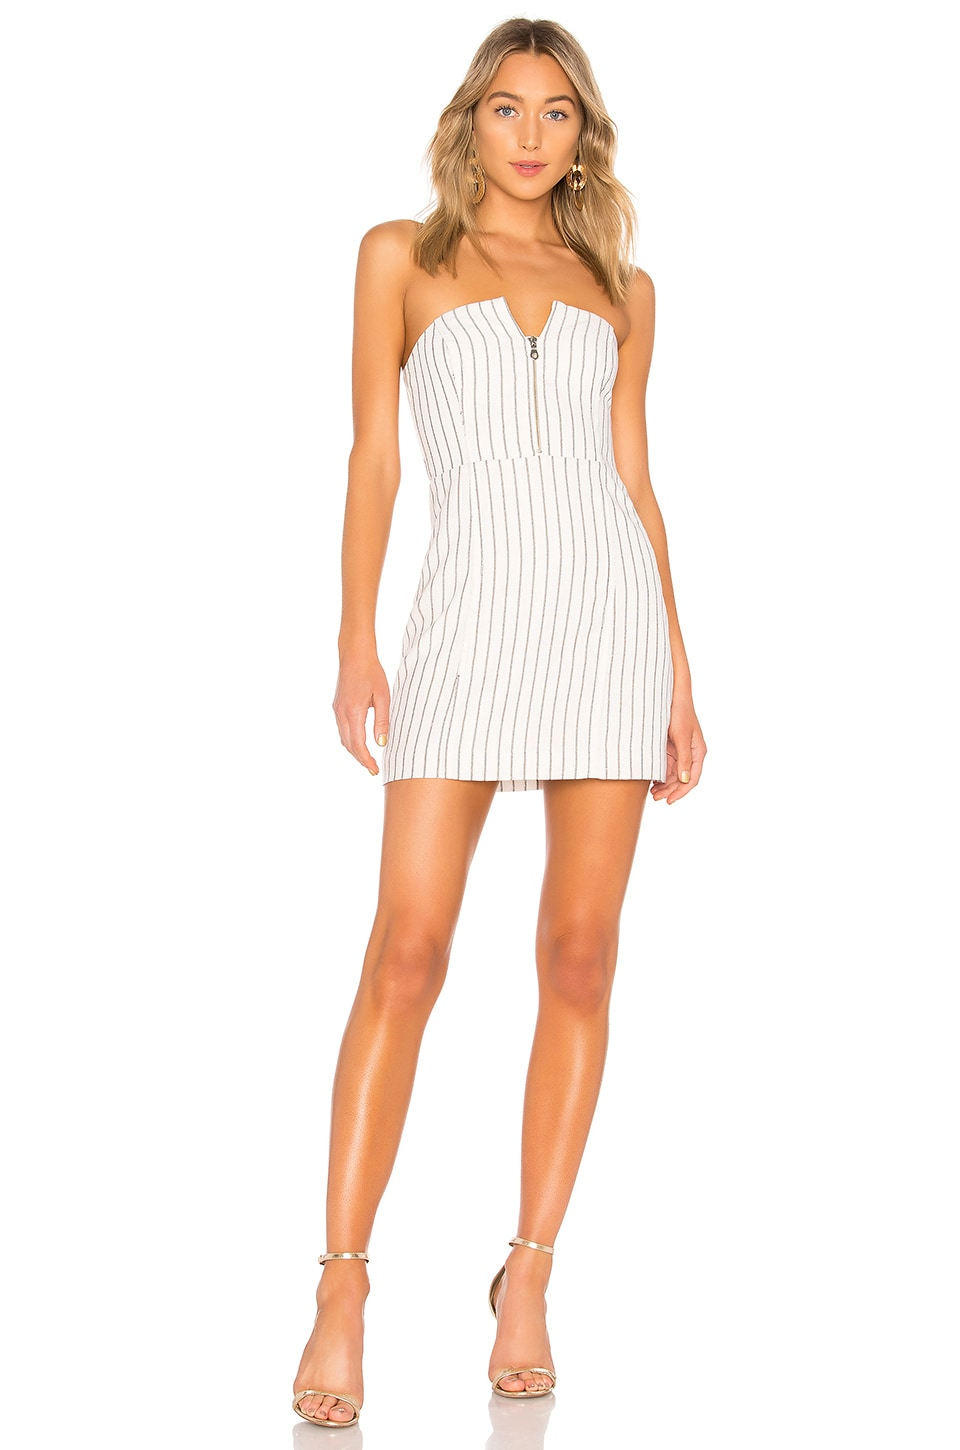 NBD Papillon Mini Dress in White & Black